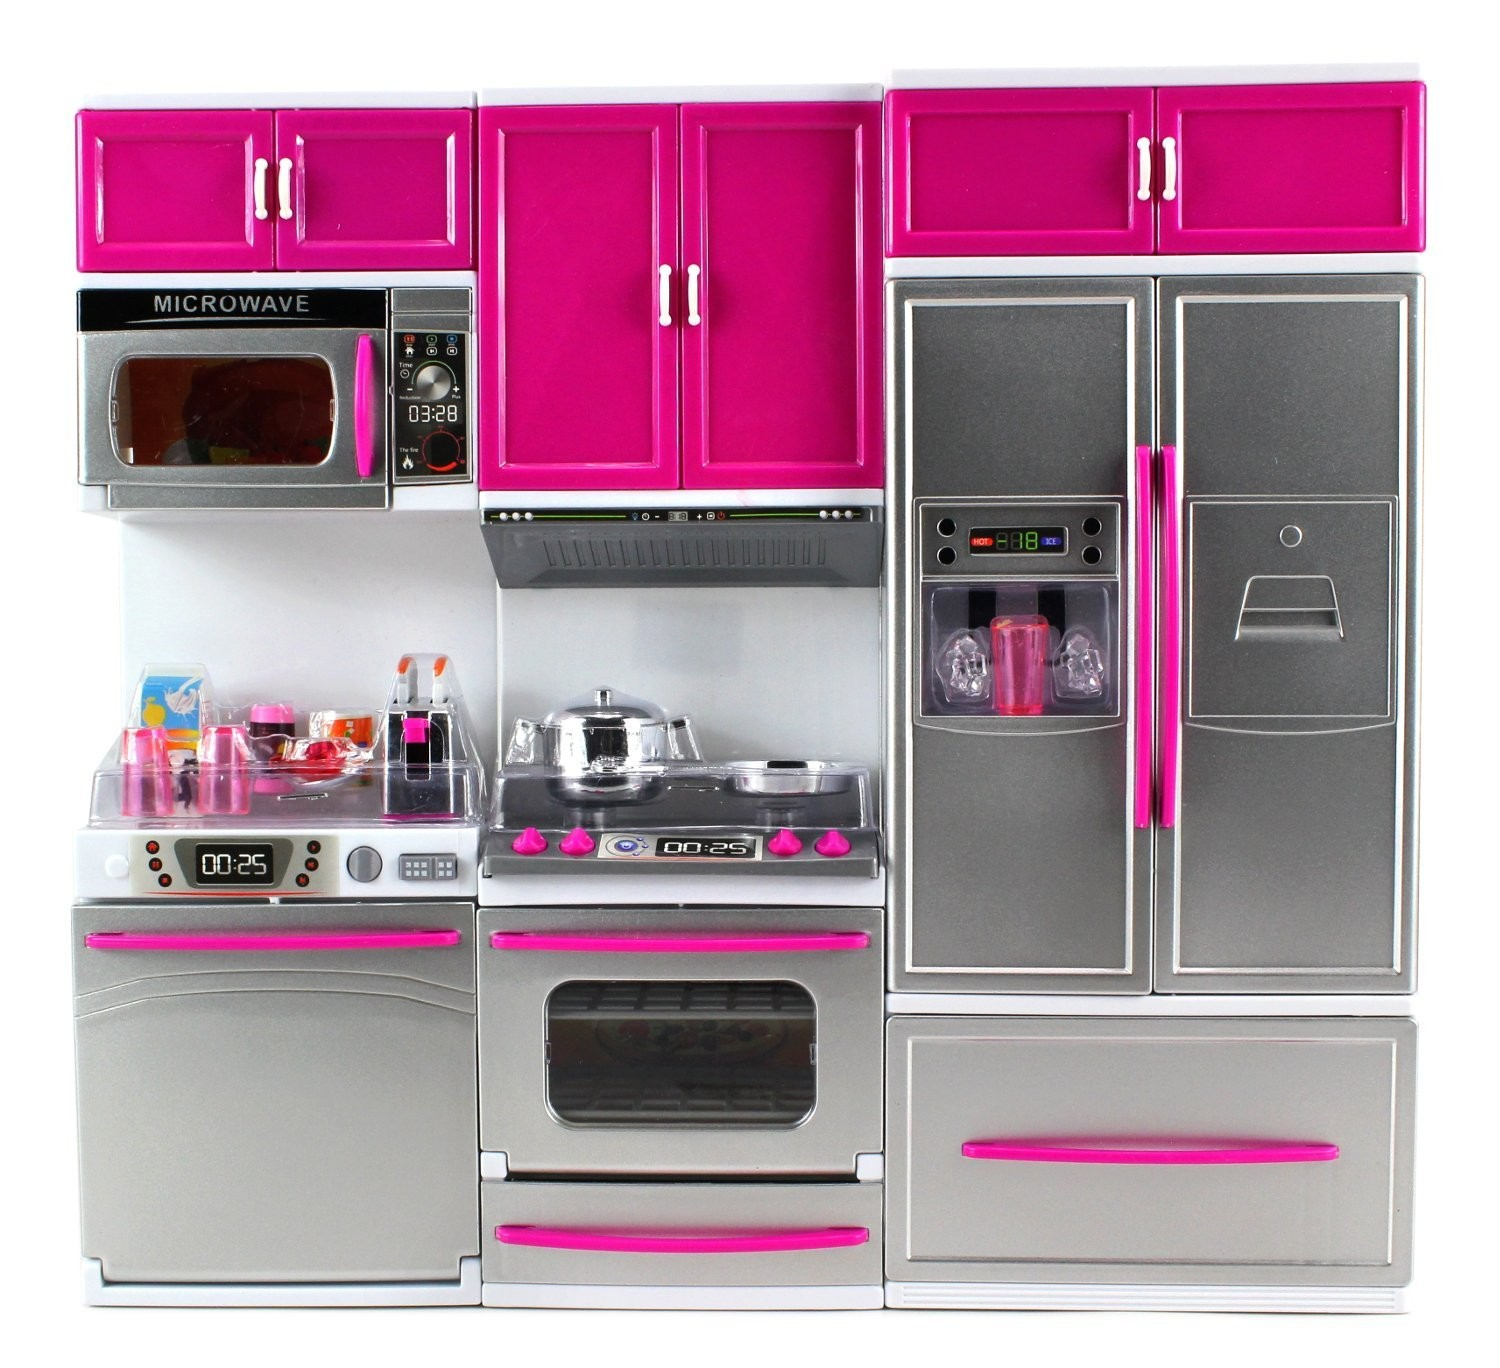 My Modern Kitchen Full Deluxe Kit Battery Operated Kitchen Playset: Refrigerator, Stove, Microwave